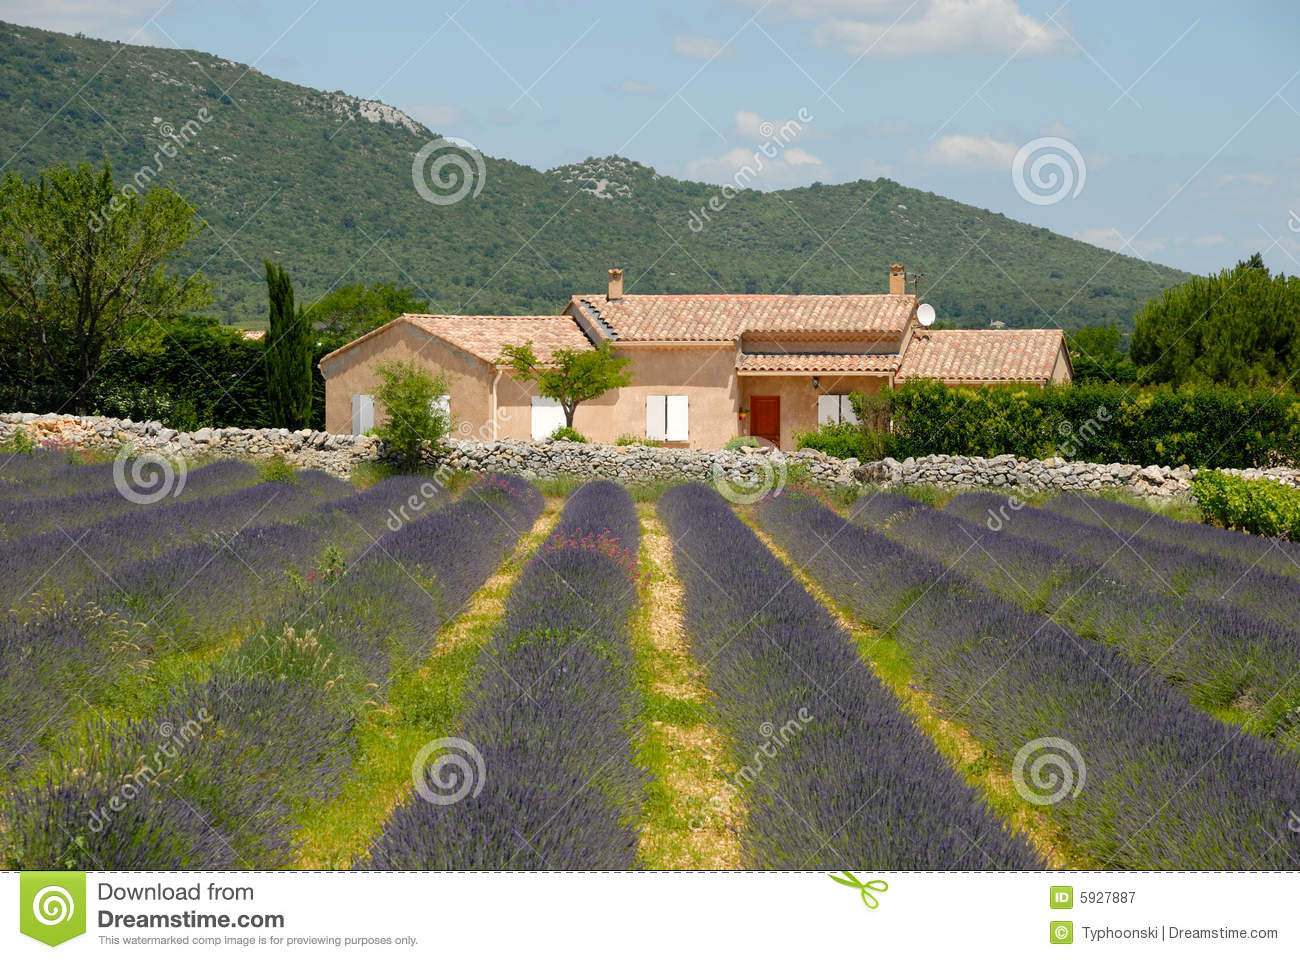 Farmhouse and lavender field in France